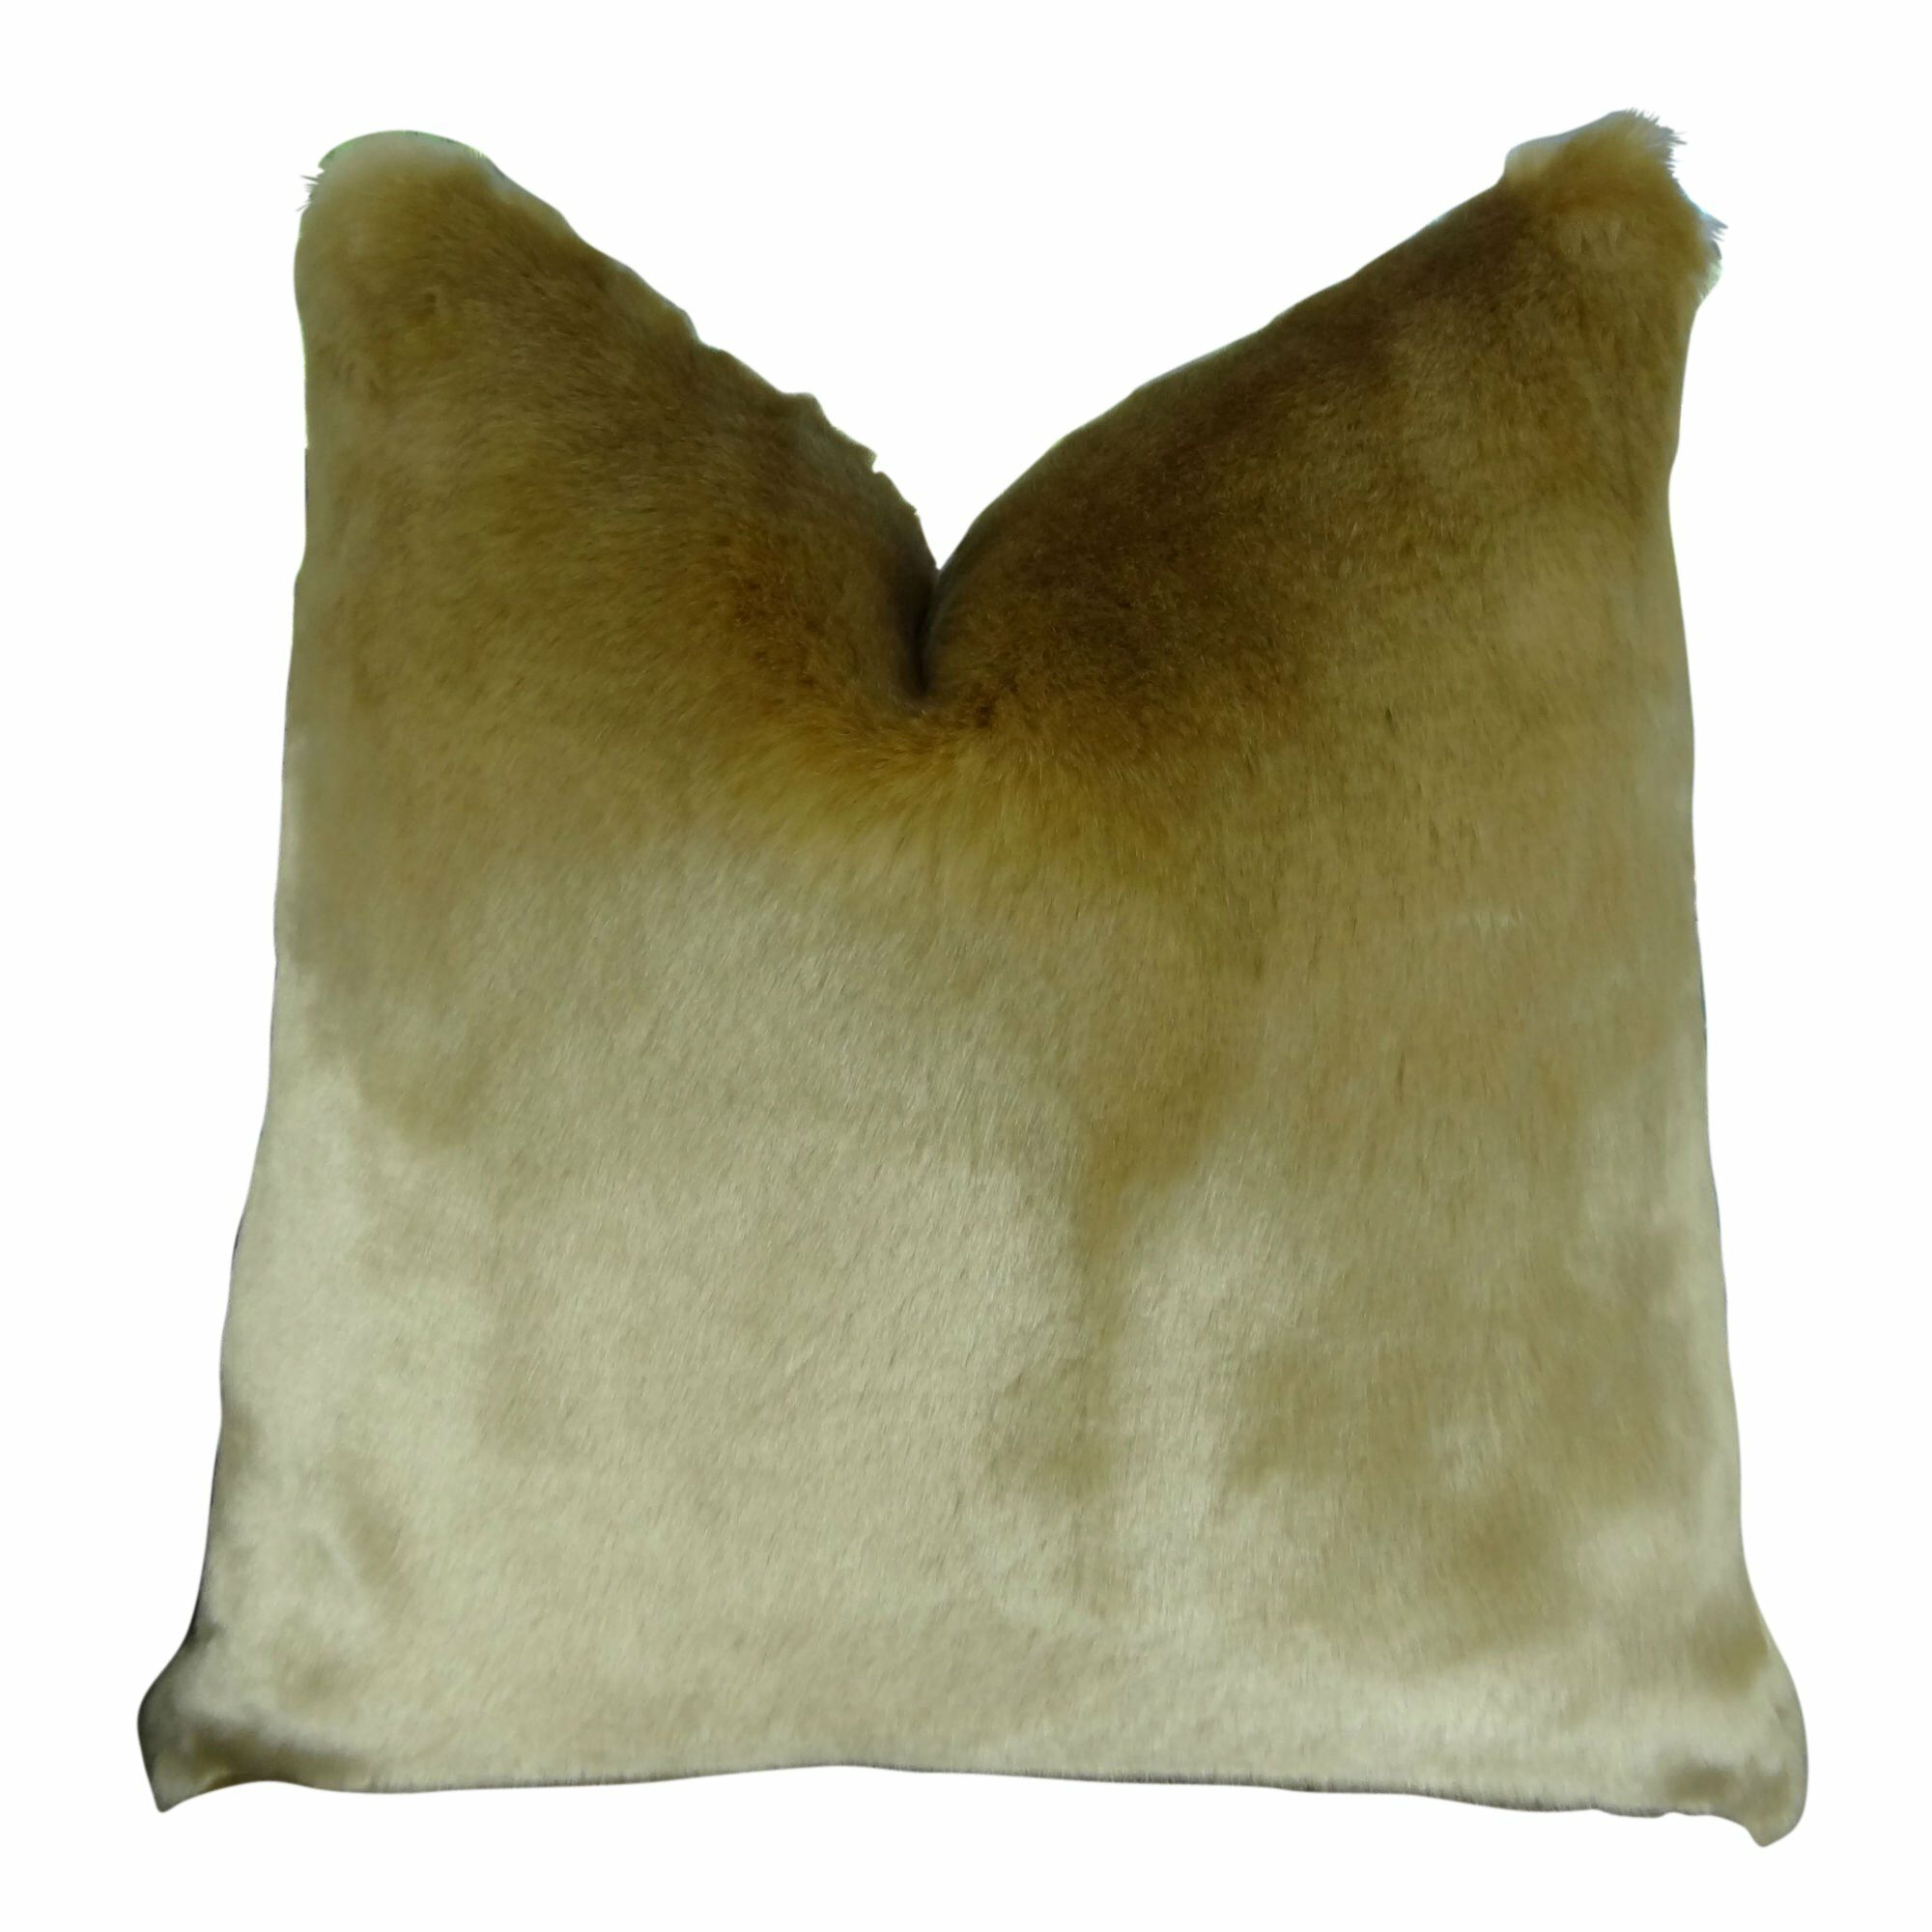 Juarez Luxury Tissavel Faux Fur Pillow Fill Material: Cover Only - No Insert, Size: 20